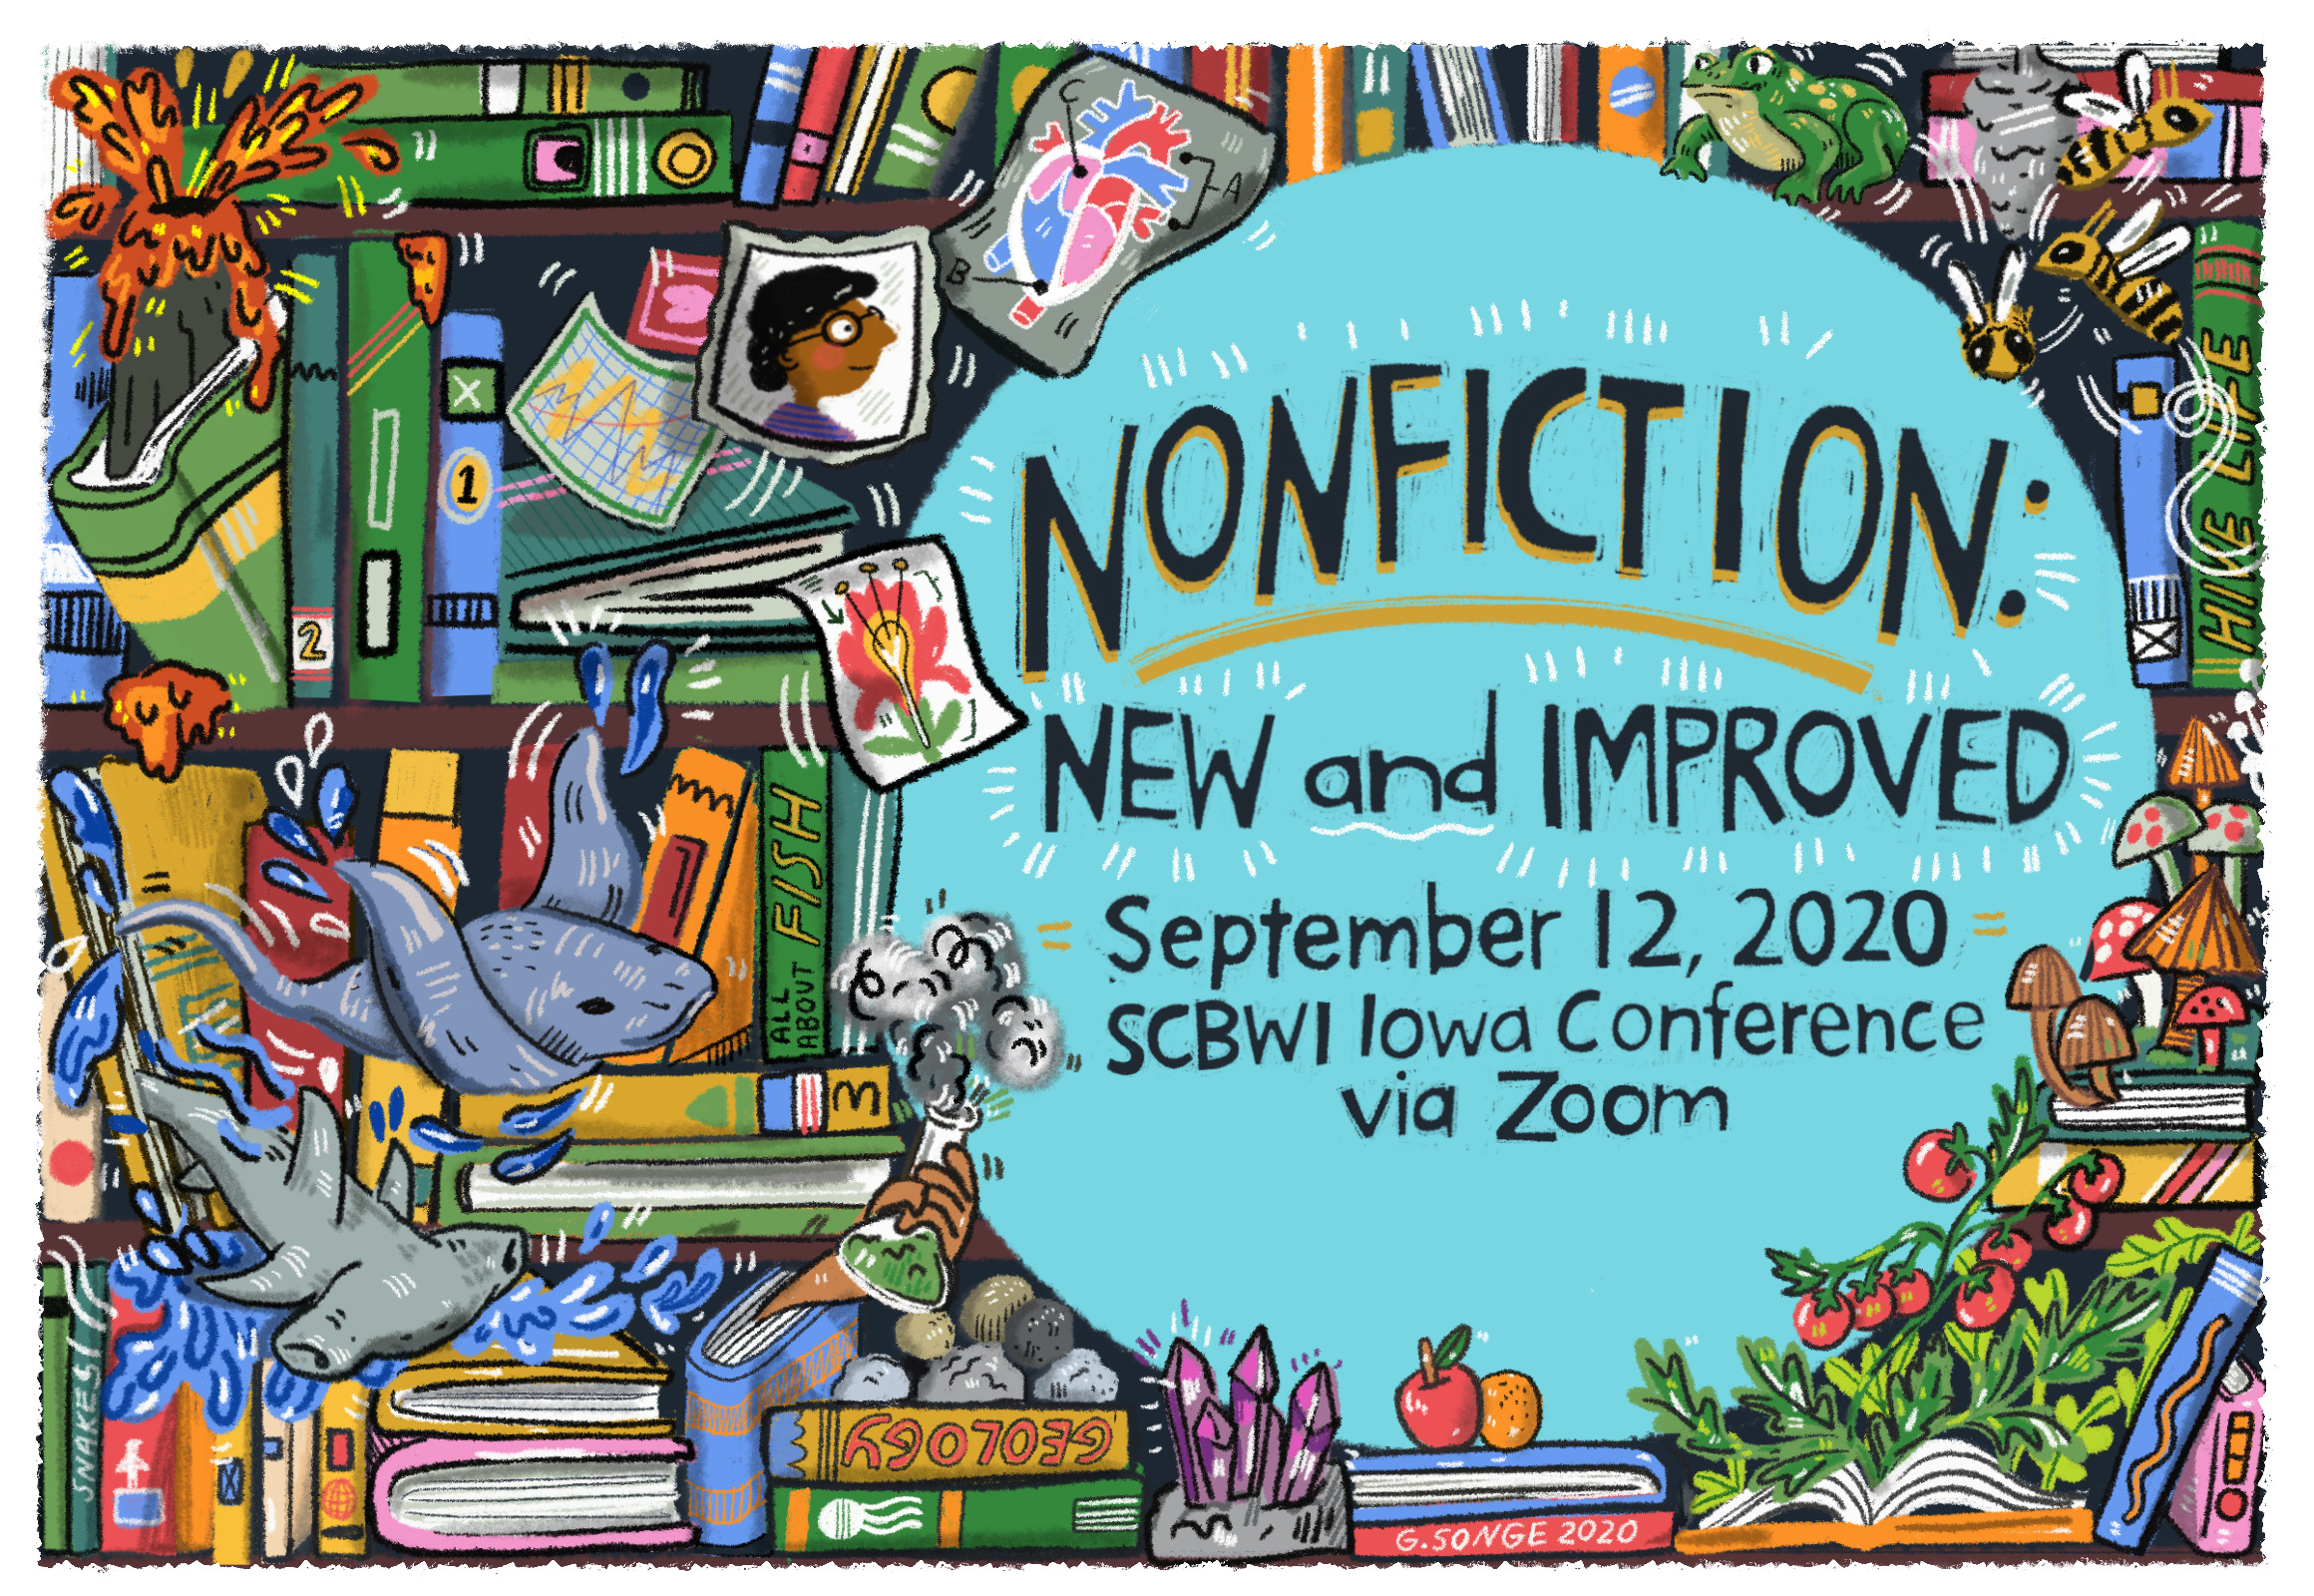 Non-Fiction: New and Improved! Online one-day conference September 12th, 2020. $50 for members. $75 for Non-members. Registration opens July 18th, 2020 at 10am CST. Click here to learn more about the event here.